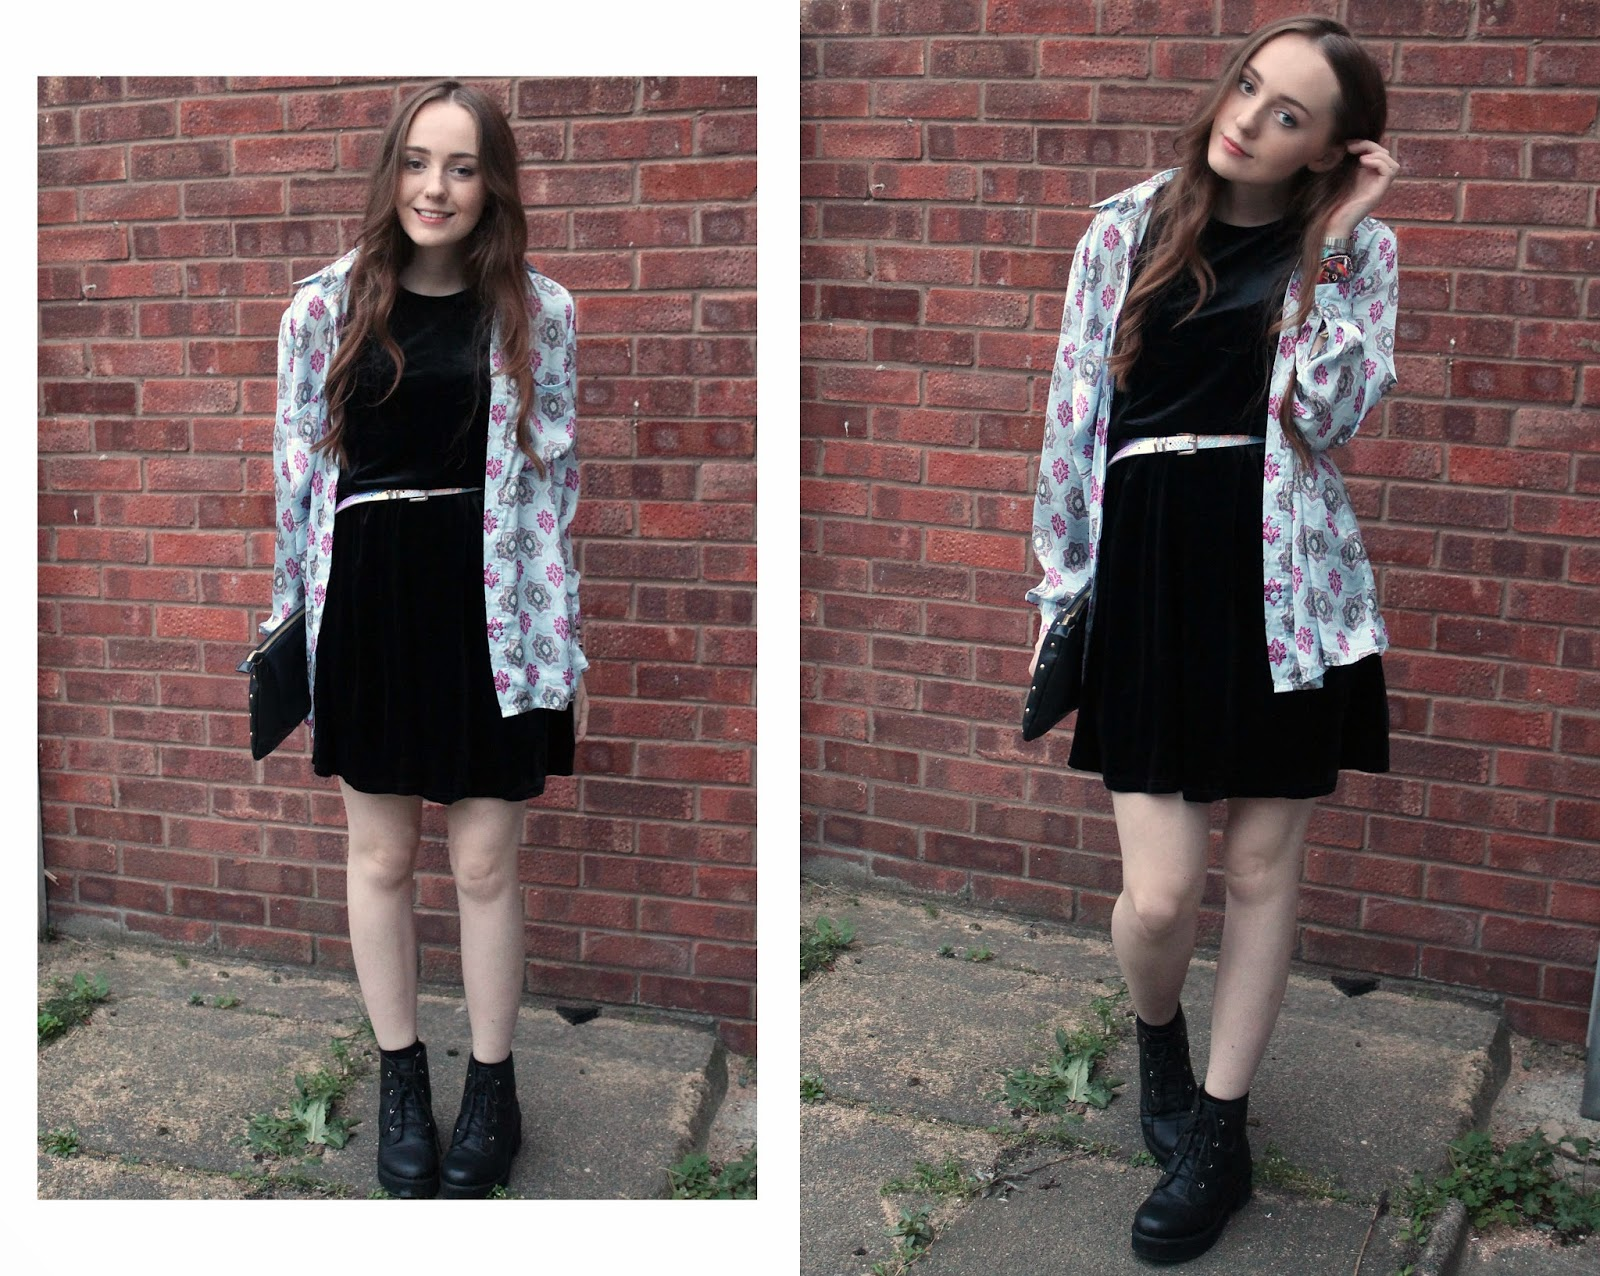 OOTD featuring black velvet skater dress from get the label, missguided printed blue and pink shirt, blue and pink iridescent belt from primark, asos revolution ankle boots and black studded clutch bag from river island - blogger review